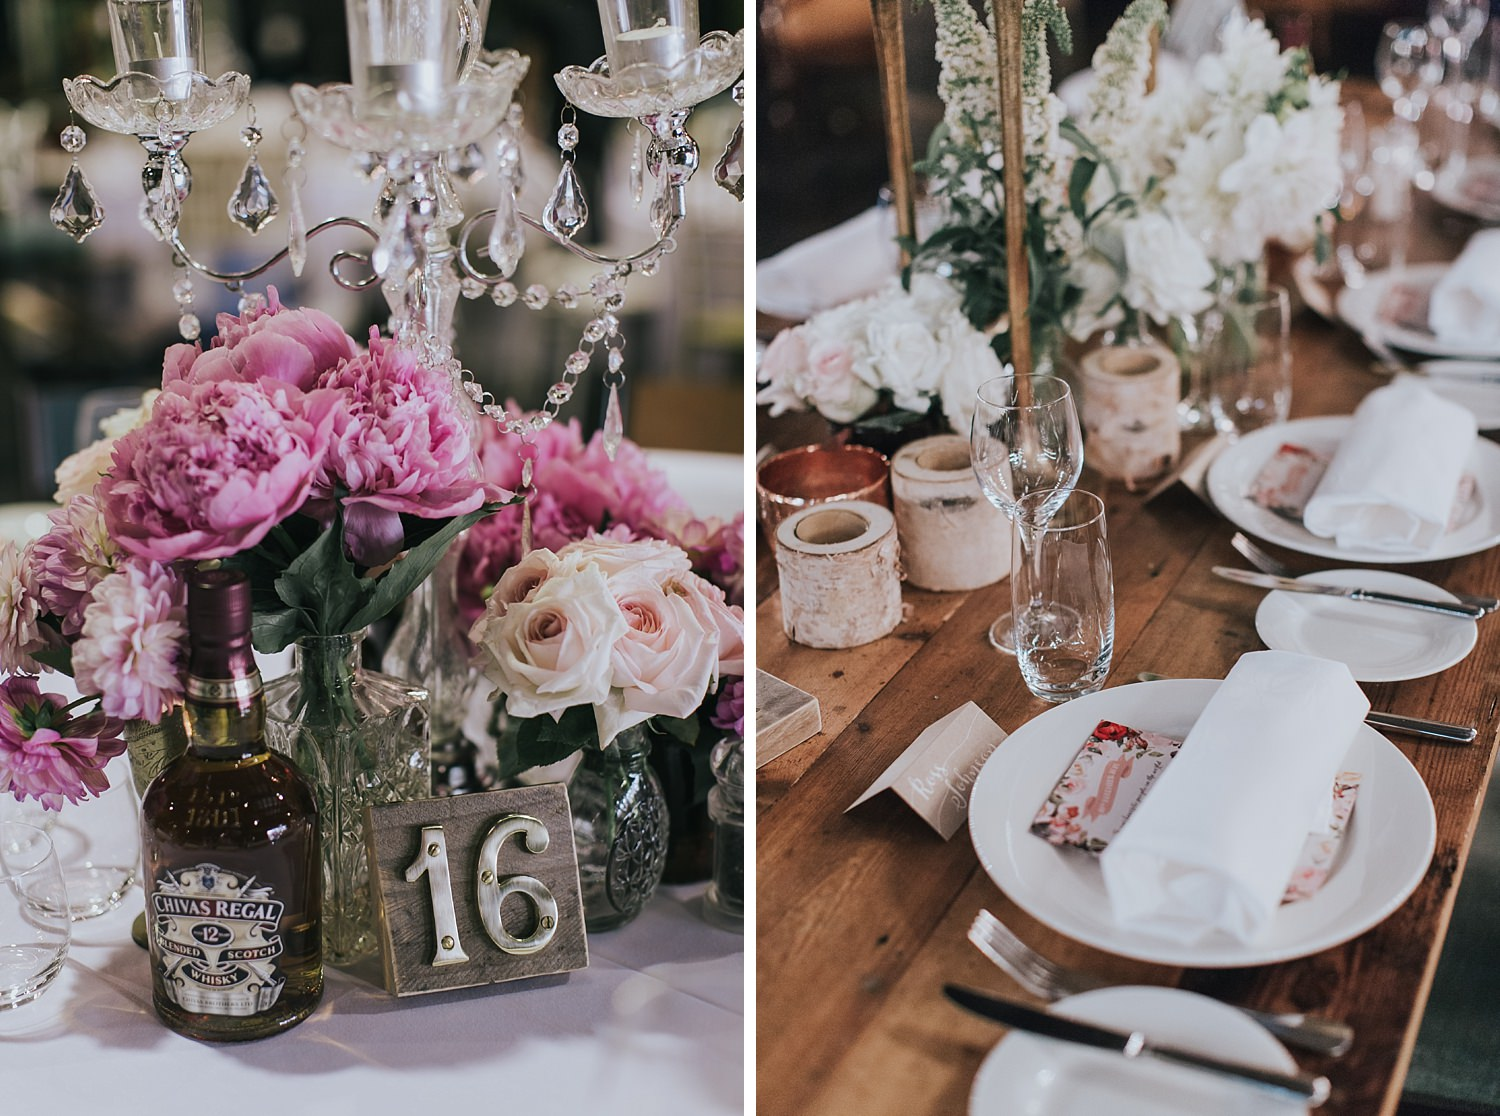 wedding reception details styled by she designs events